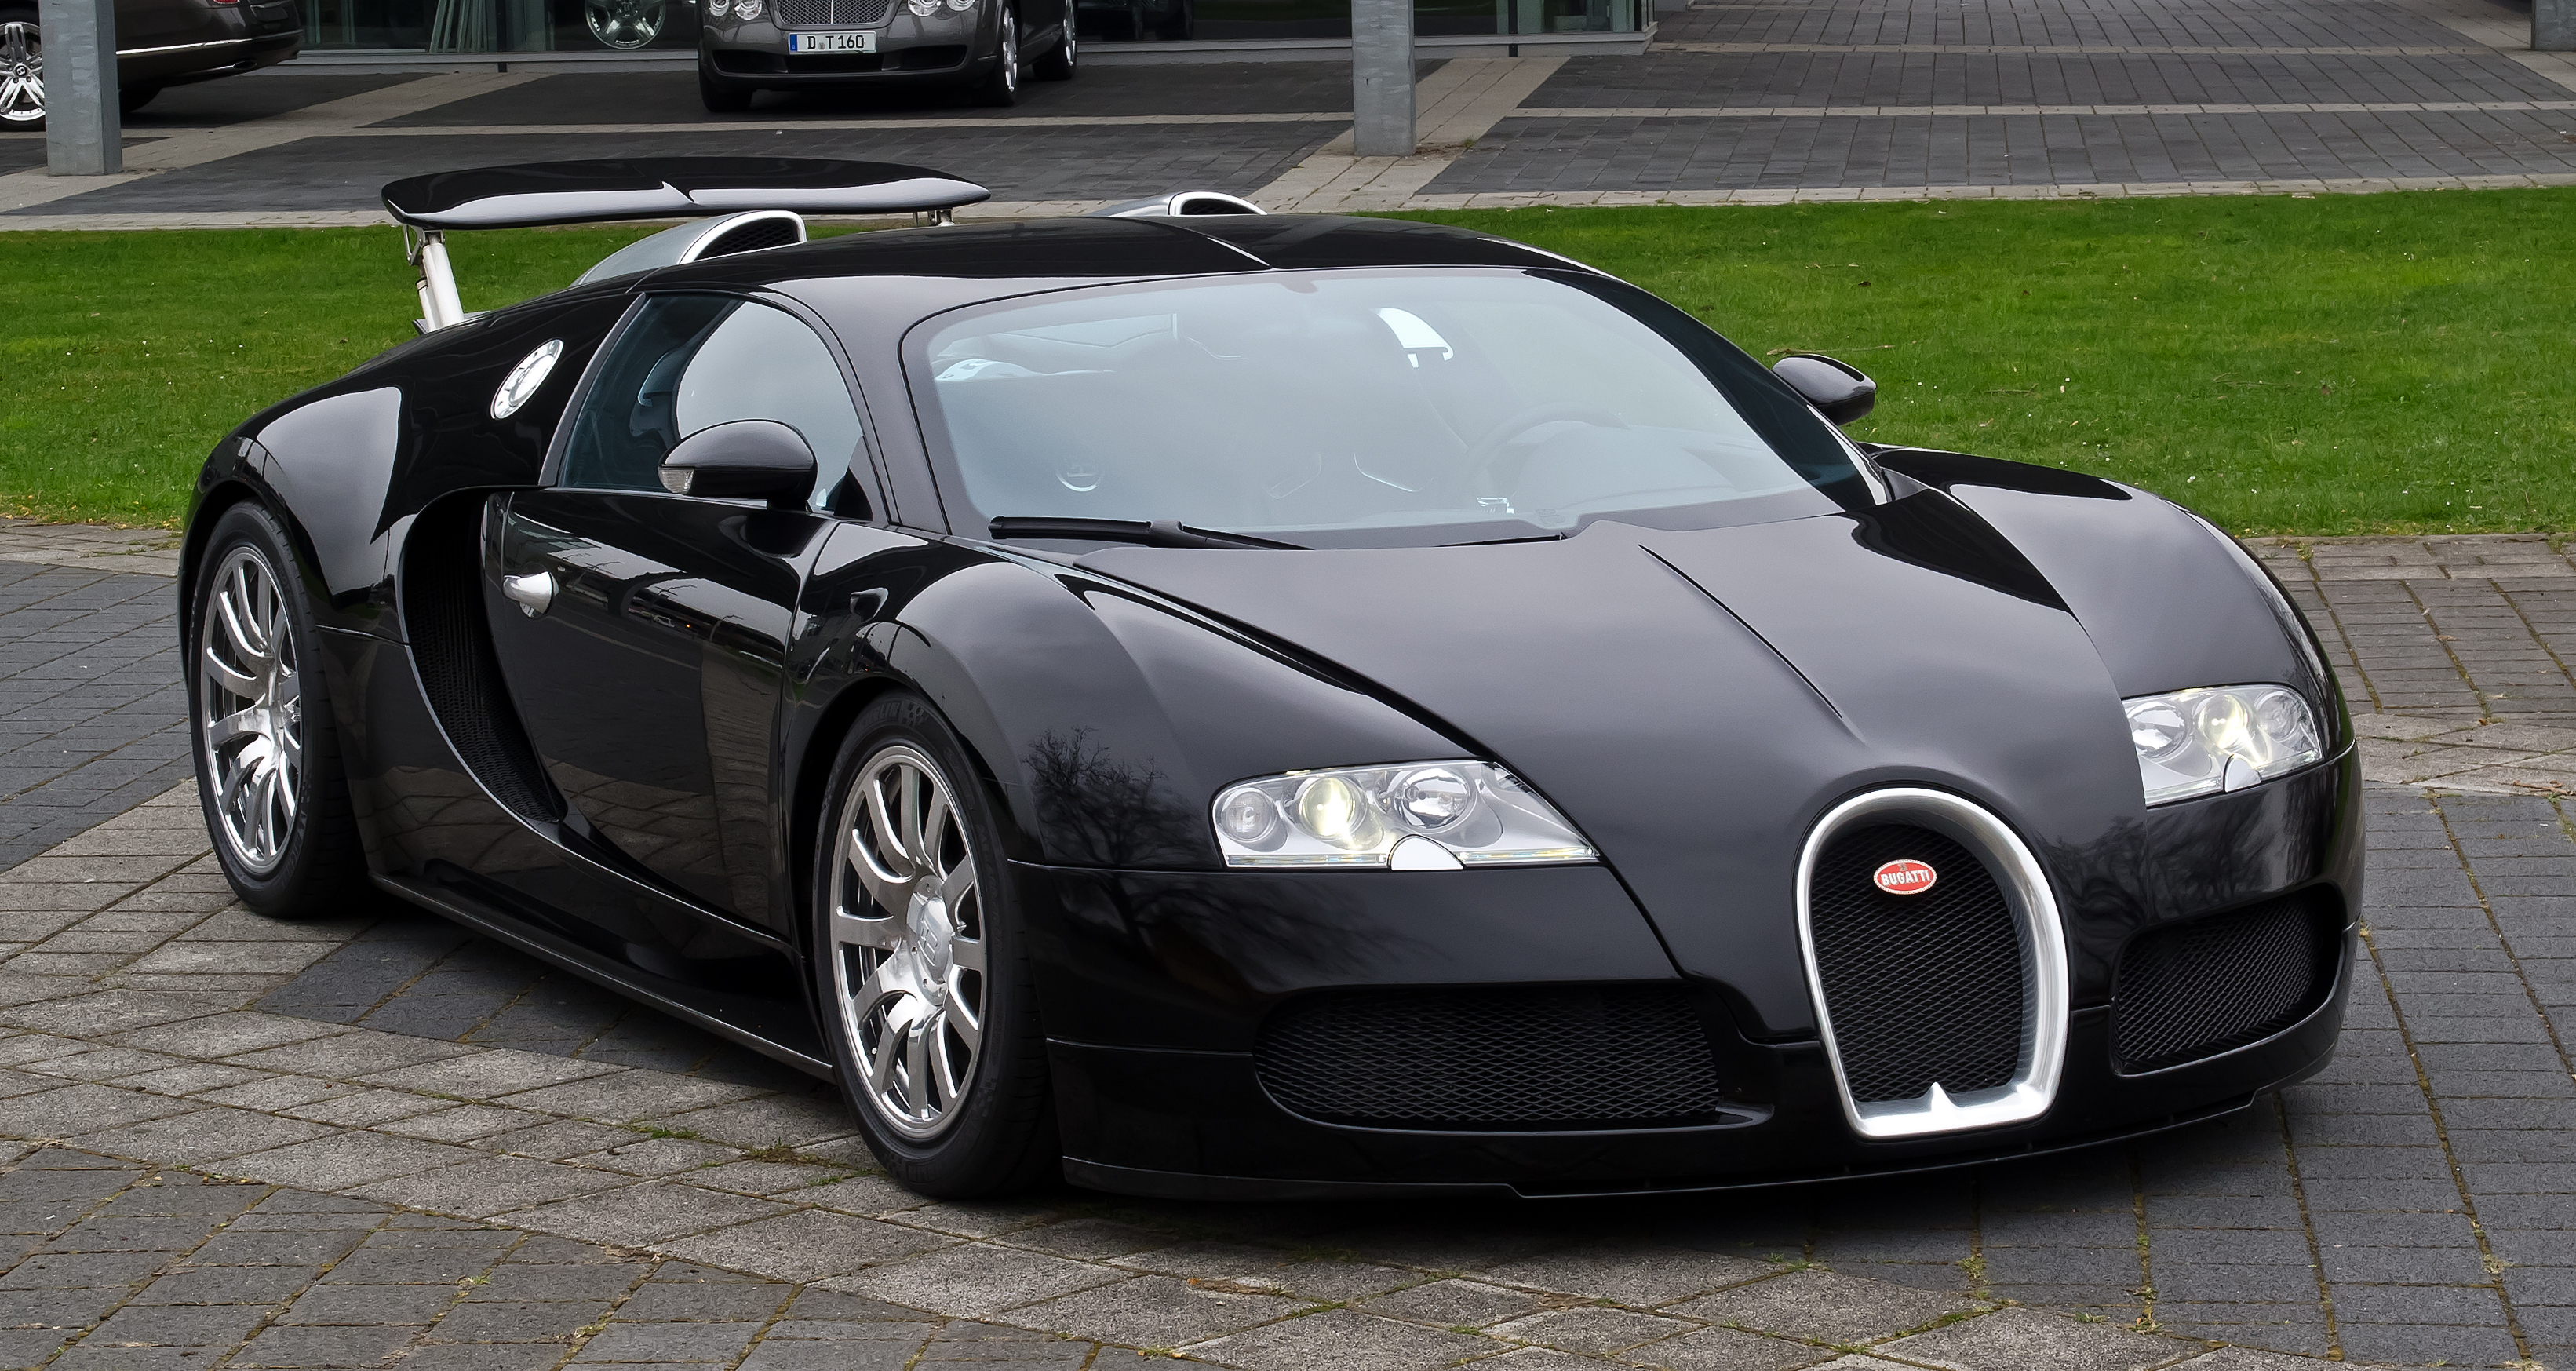 file bugatti veyron 16 4 frontansicht 2 5 april 2012 d wikipedia. Black Bedroom Furniture Sets. Home Design Ideas